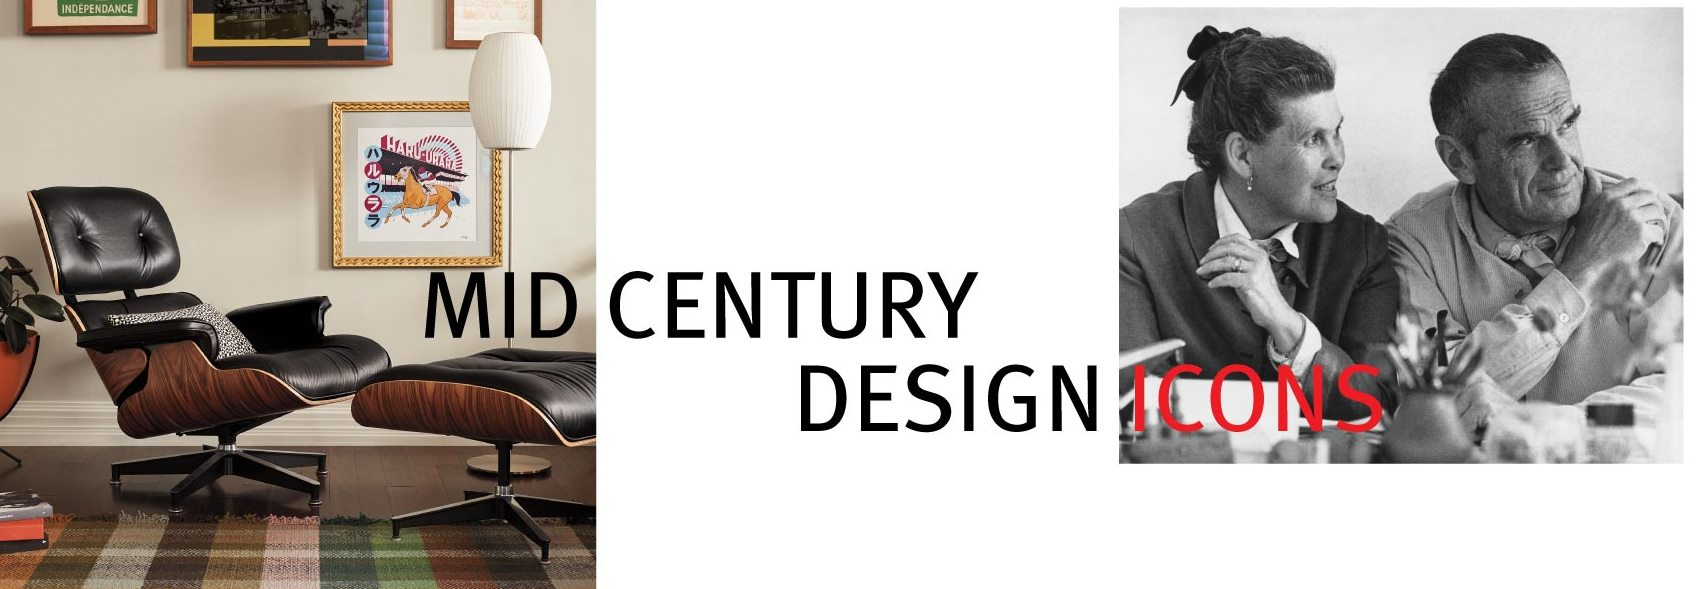 Mid Century design icons Charles and Ray Eames